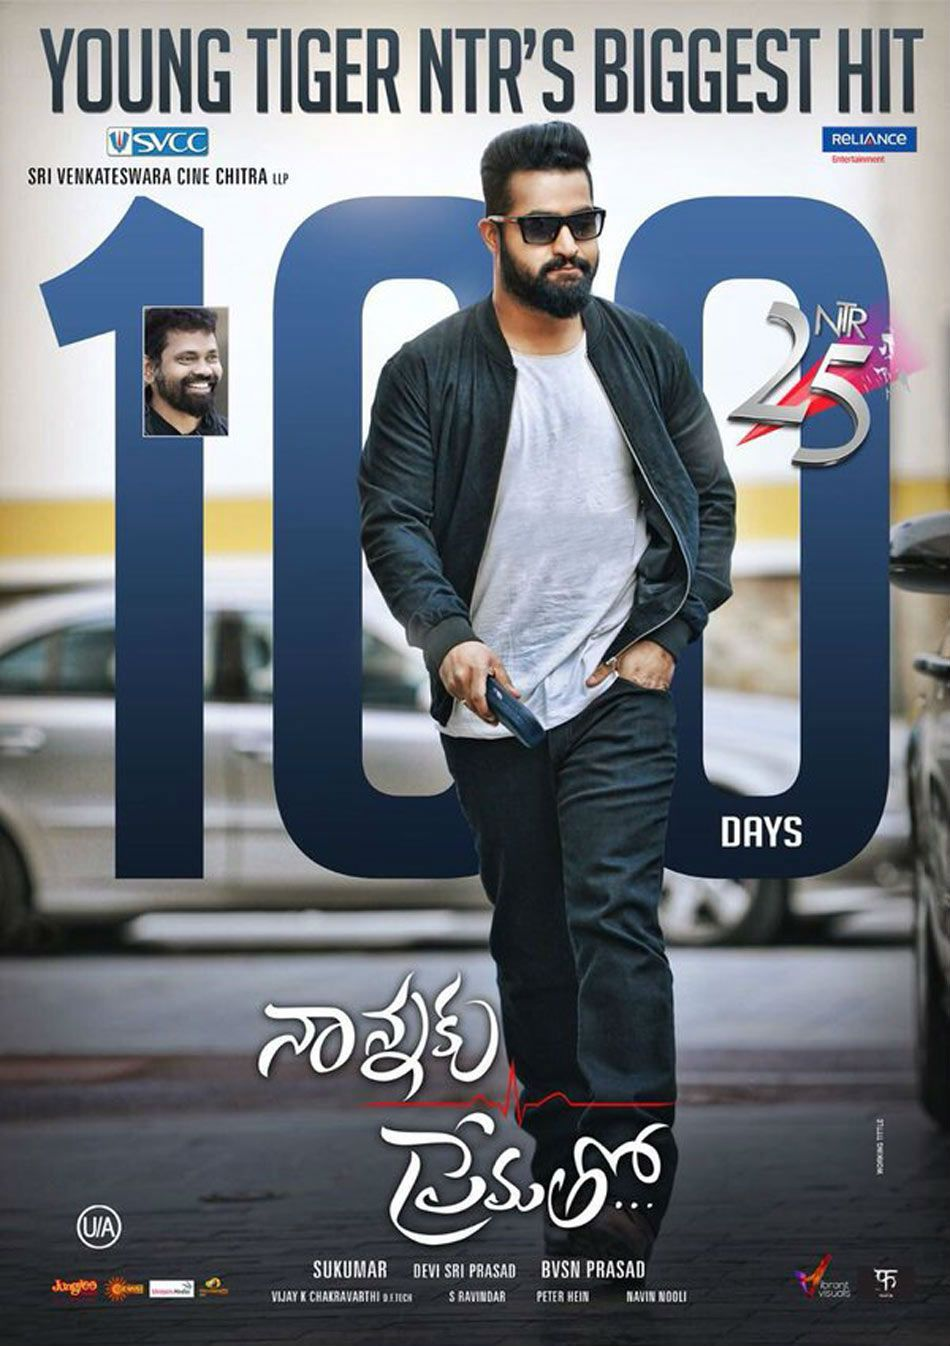 jr NTR's next film, Nannaku Prematho, is releasing on Sankranthi 2016. The film directed by Sukumar has been making news ever since the first look …